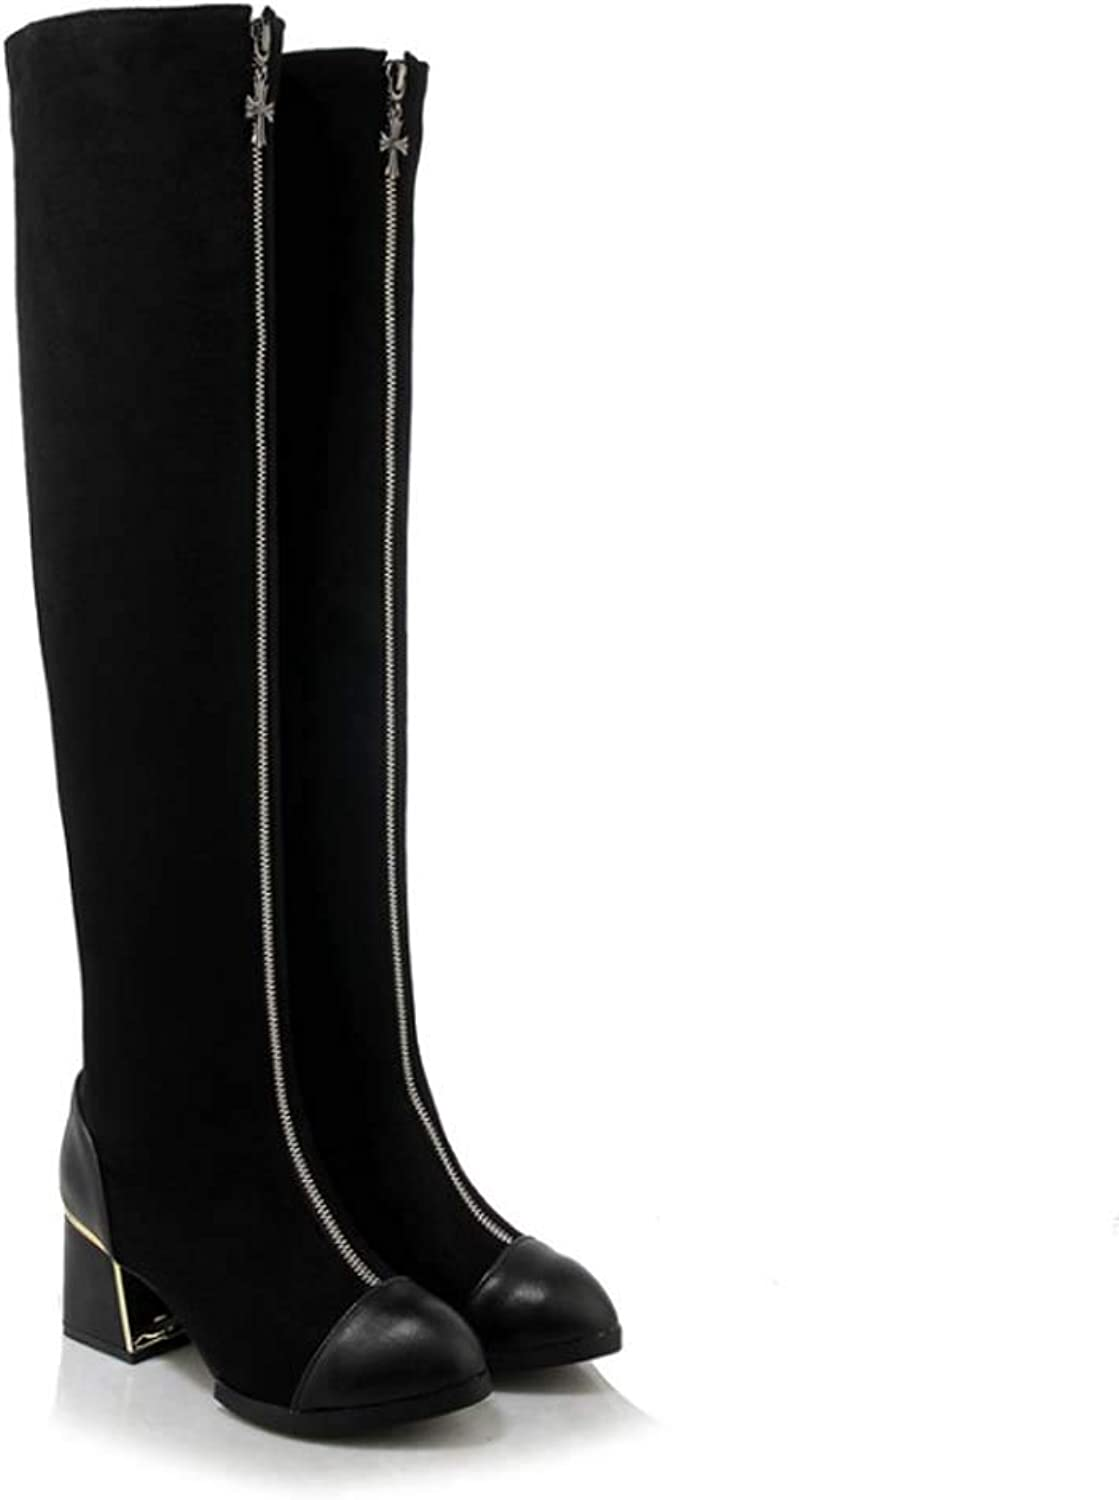 GONGFF Zipper Thick Heel High Heel Over The Knee Boots Small Size Boots Large Size Women's Boots